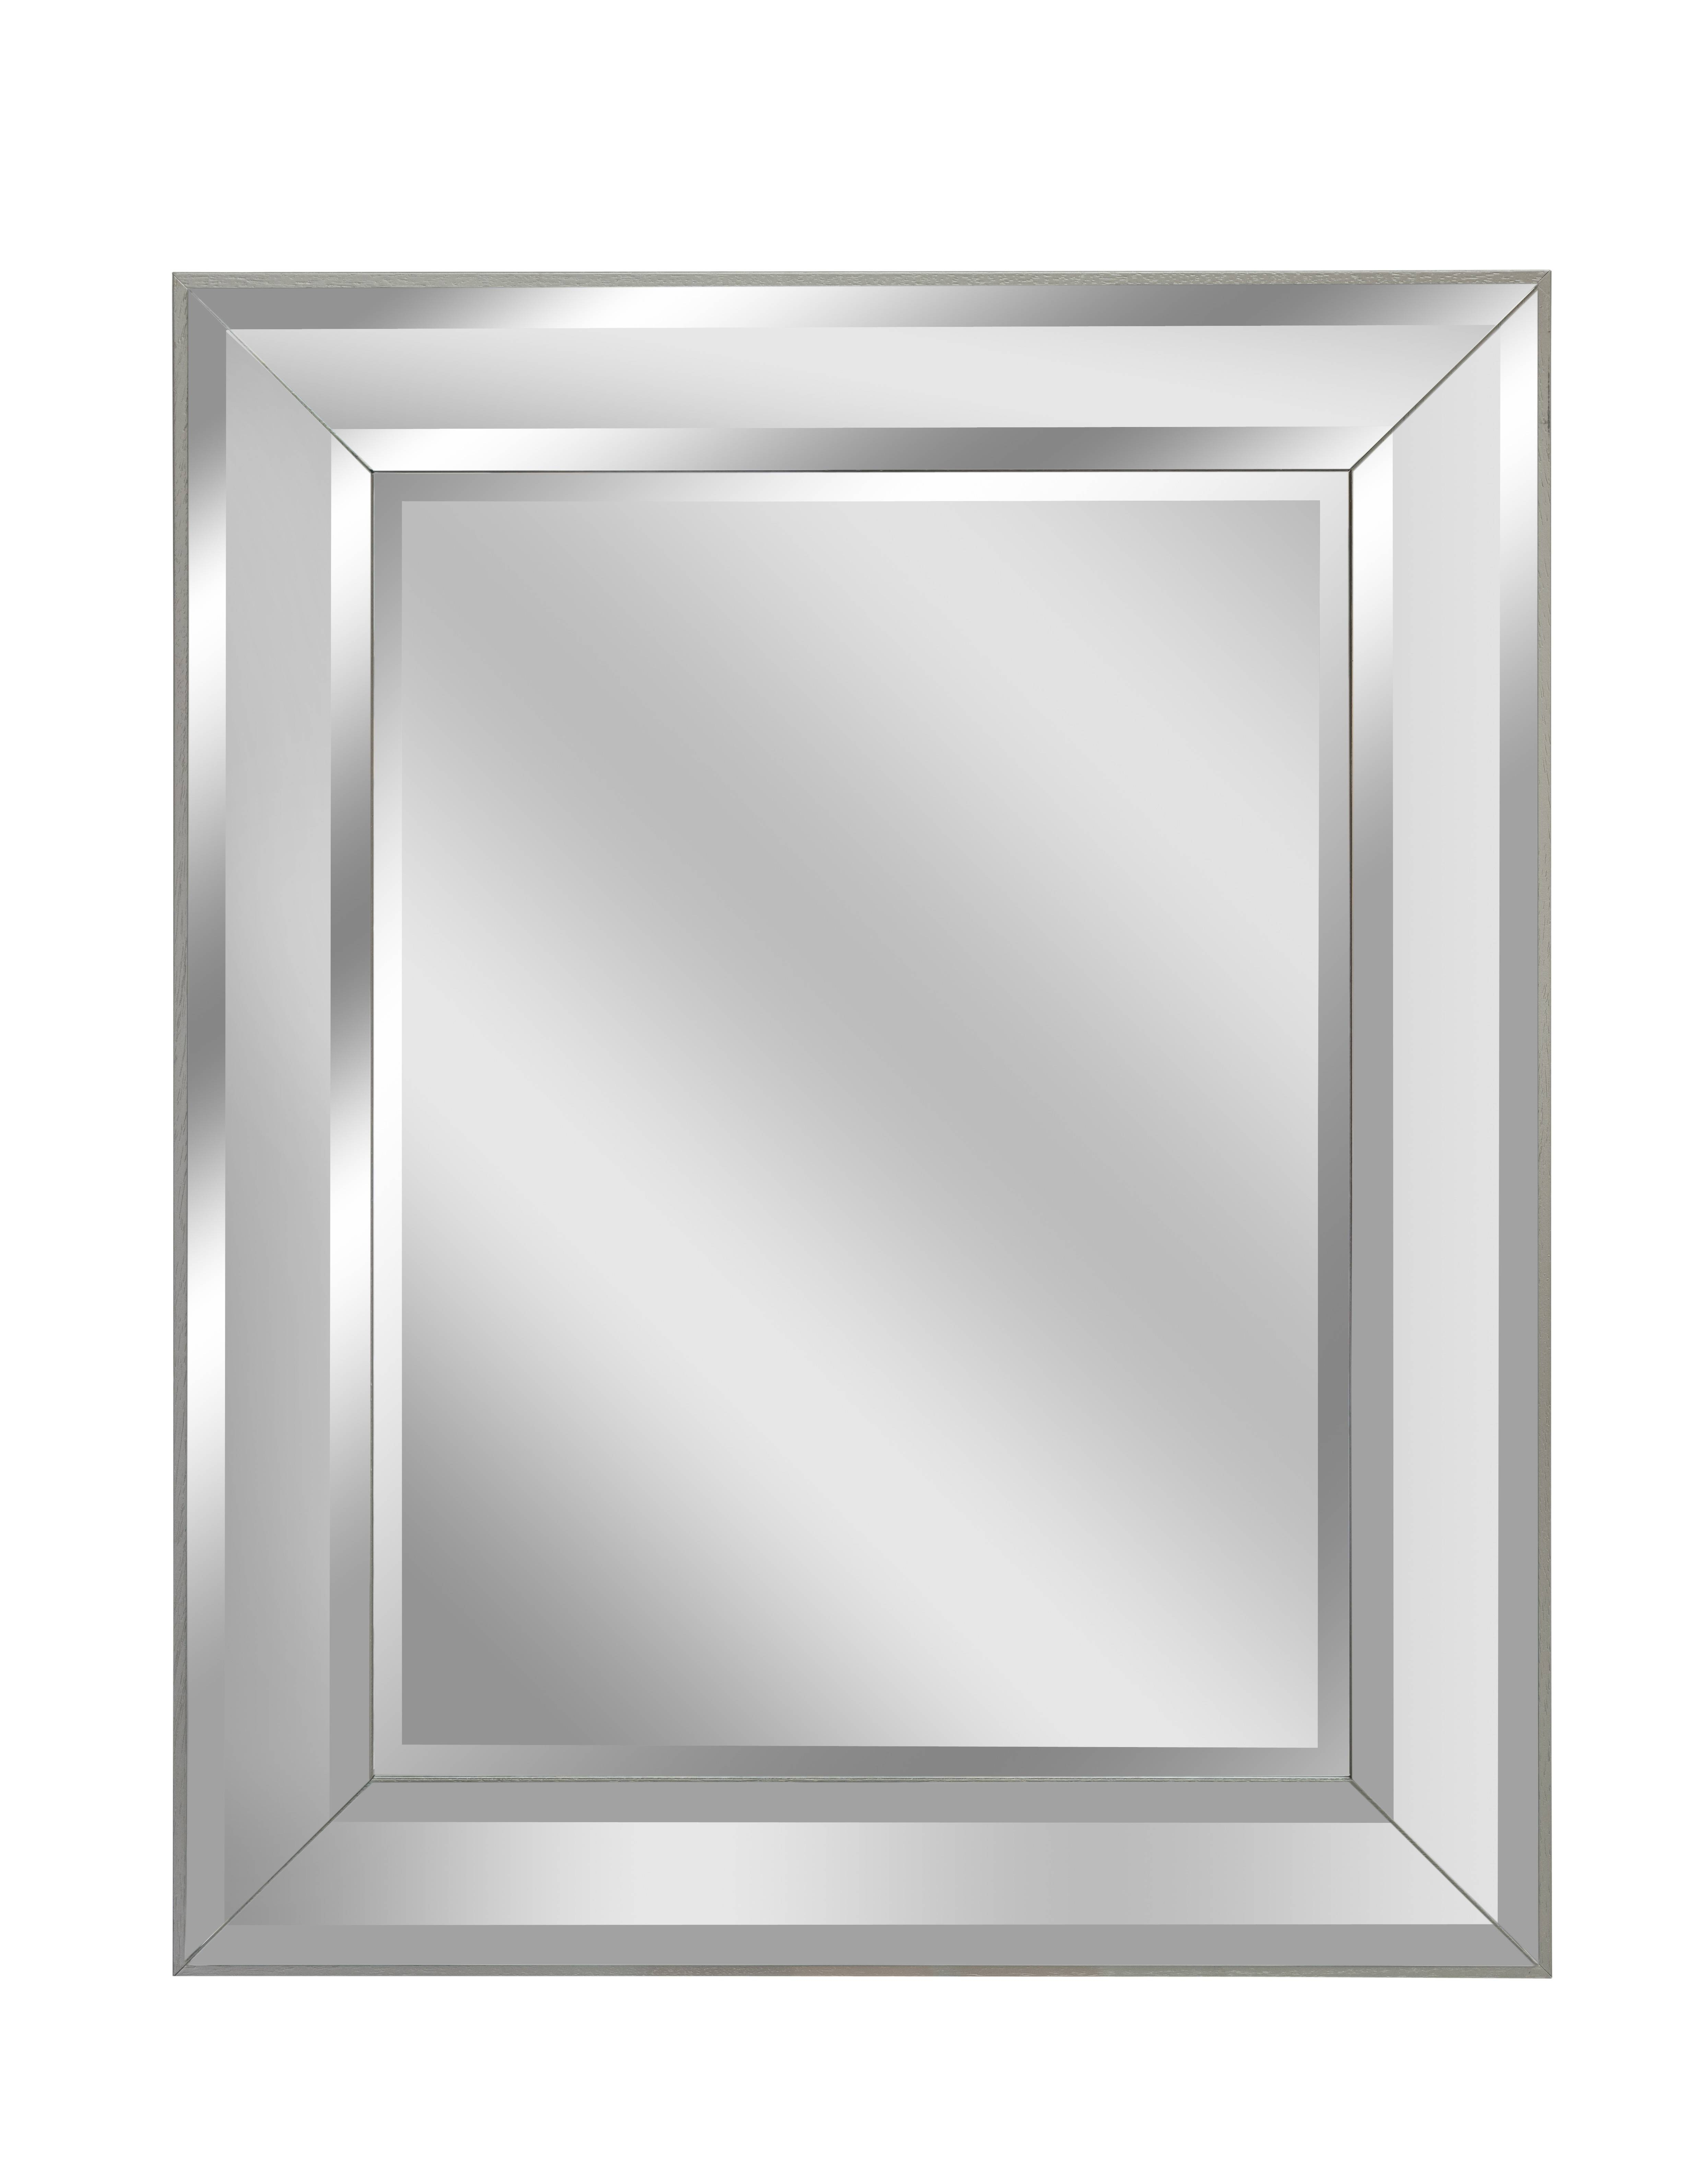 Small Silver Mod Mirror | Bedroom Mirrors For Sale - Panfili with Small Mirrors (Image 13 of 15)